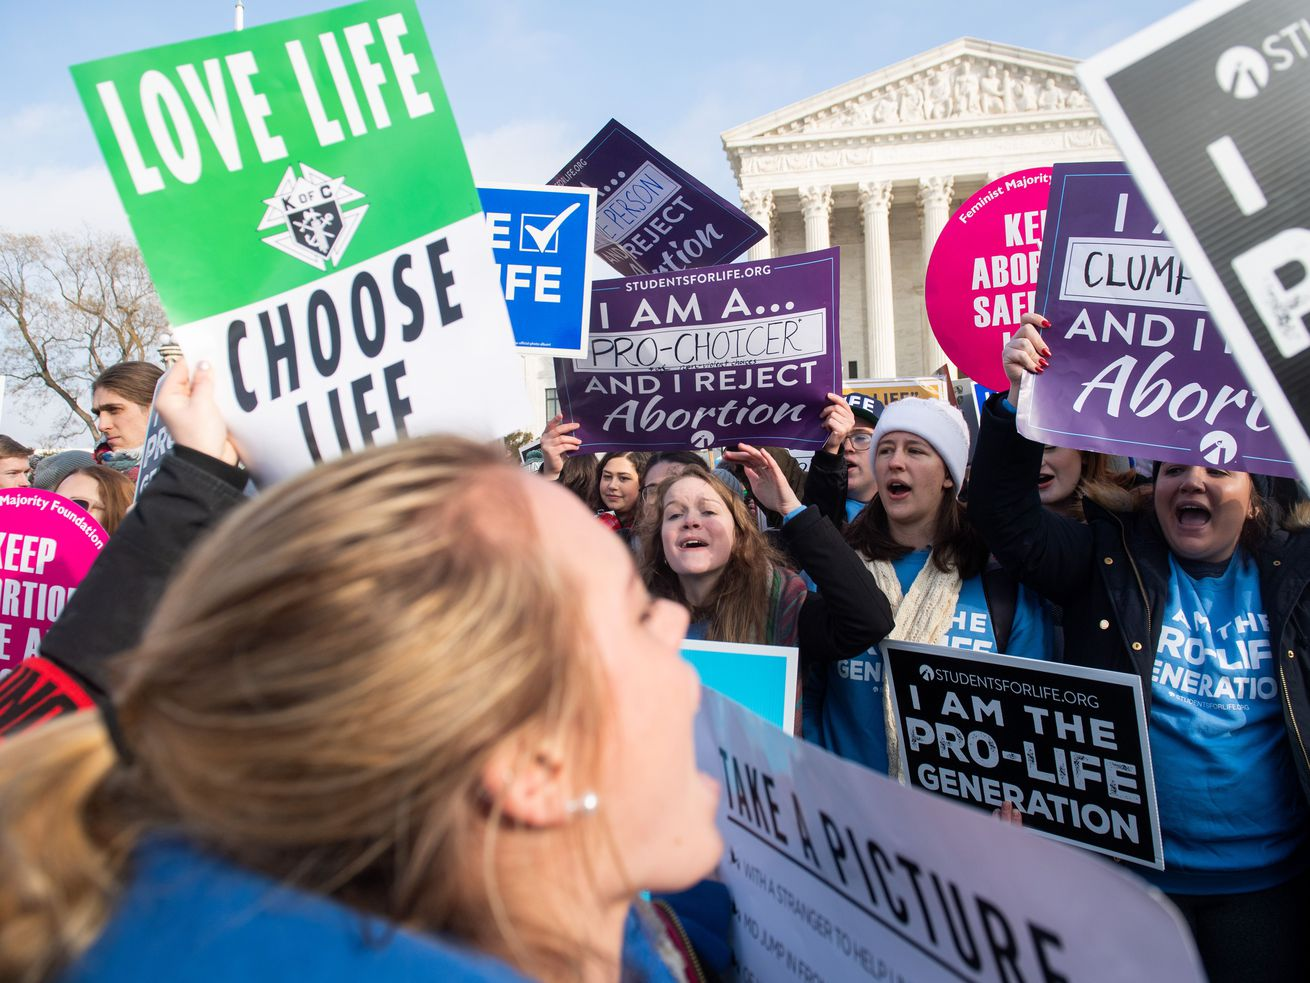 """Anti-abortion activists, including one holding a sign reading """"Love life, choose life,"""" as well as abortion-rights activists, demonstrate at the March for Life outside the US Supreme Court in Washington, DC, on January 18, 2019."""